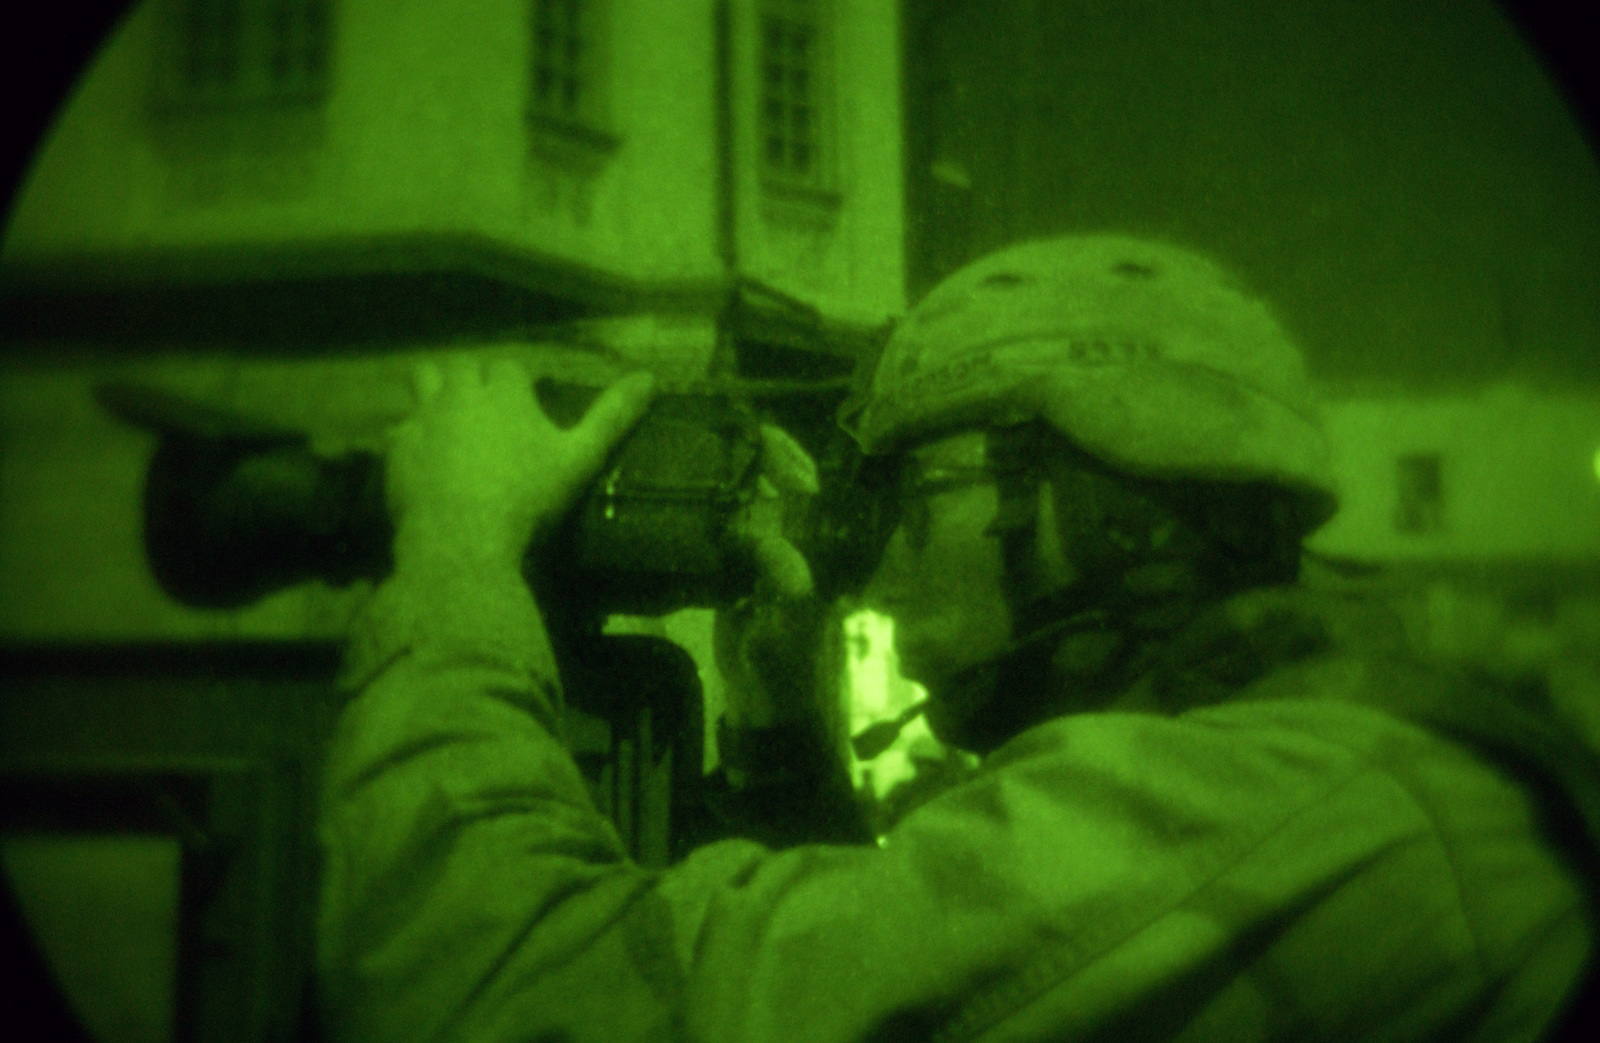 A US Army (USA) Soldier assigned to the 2nd Brigade Combat Team (BCT), 162nd Infantry Battalion, uses his infrared camera to search down alleys near a mosque during a nighttime raid in Al-Tharwa, Iraq, during Operation IRAQI FREEDOM. (SUBSTANDARD)